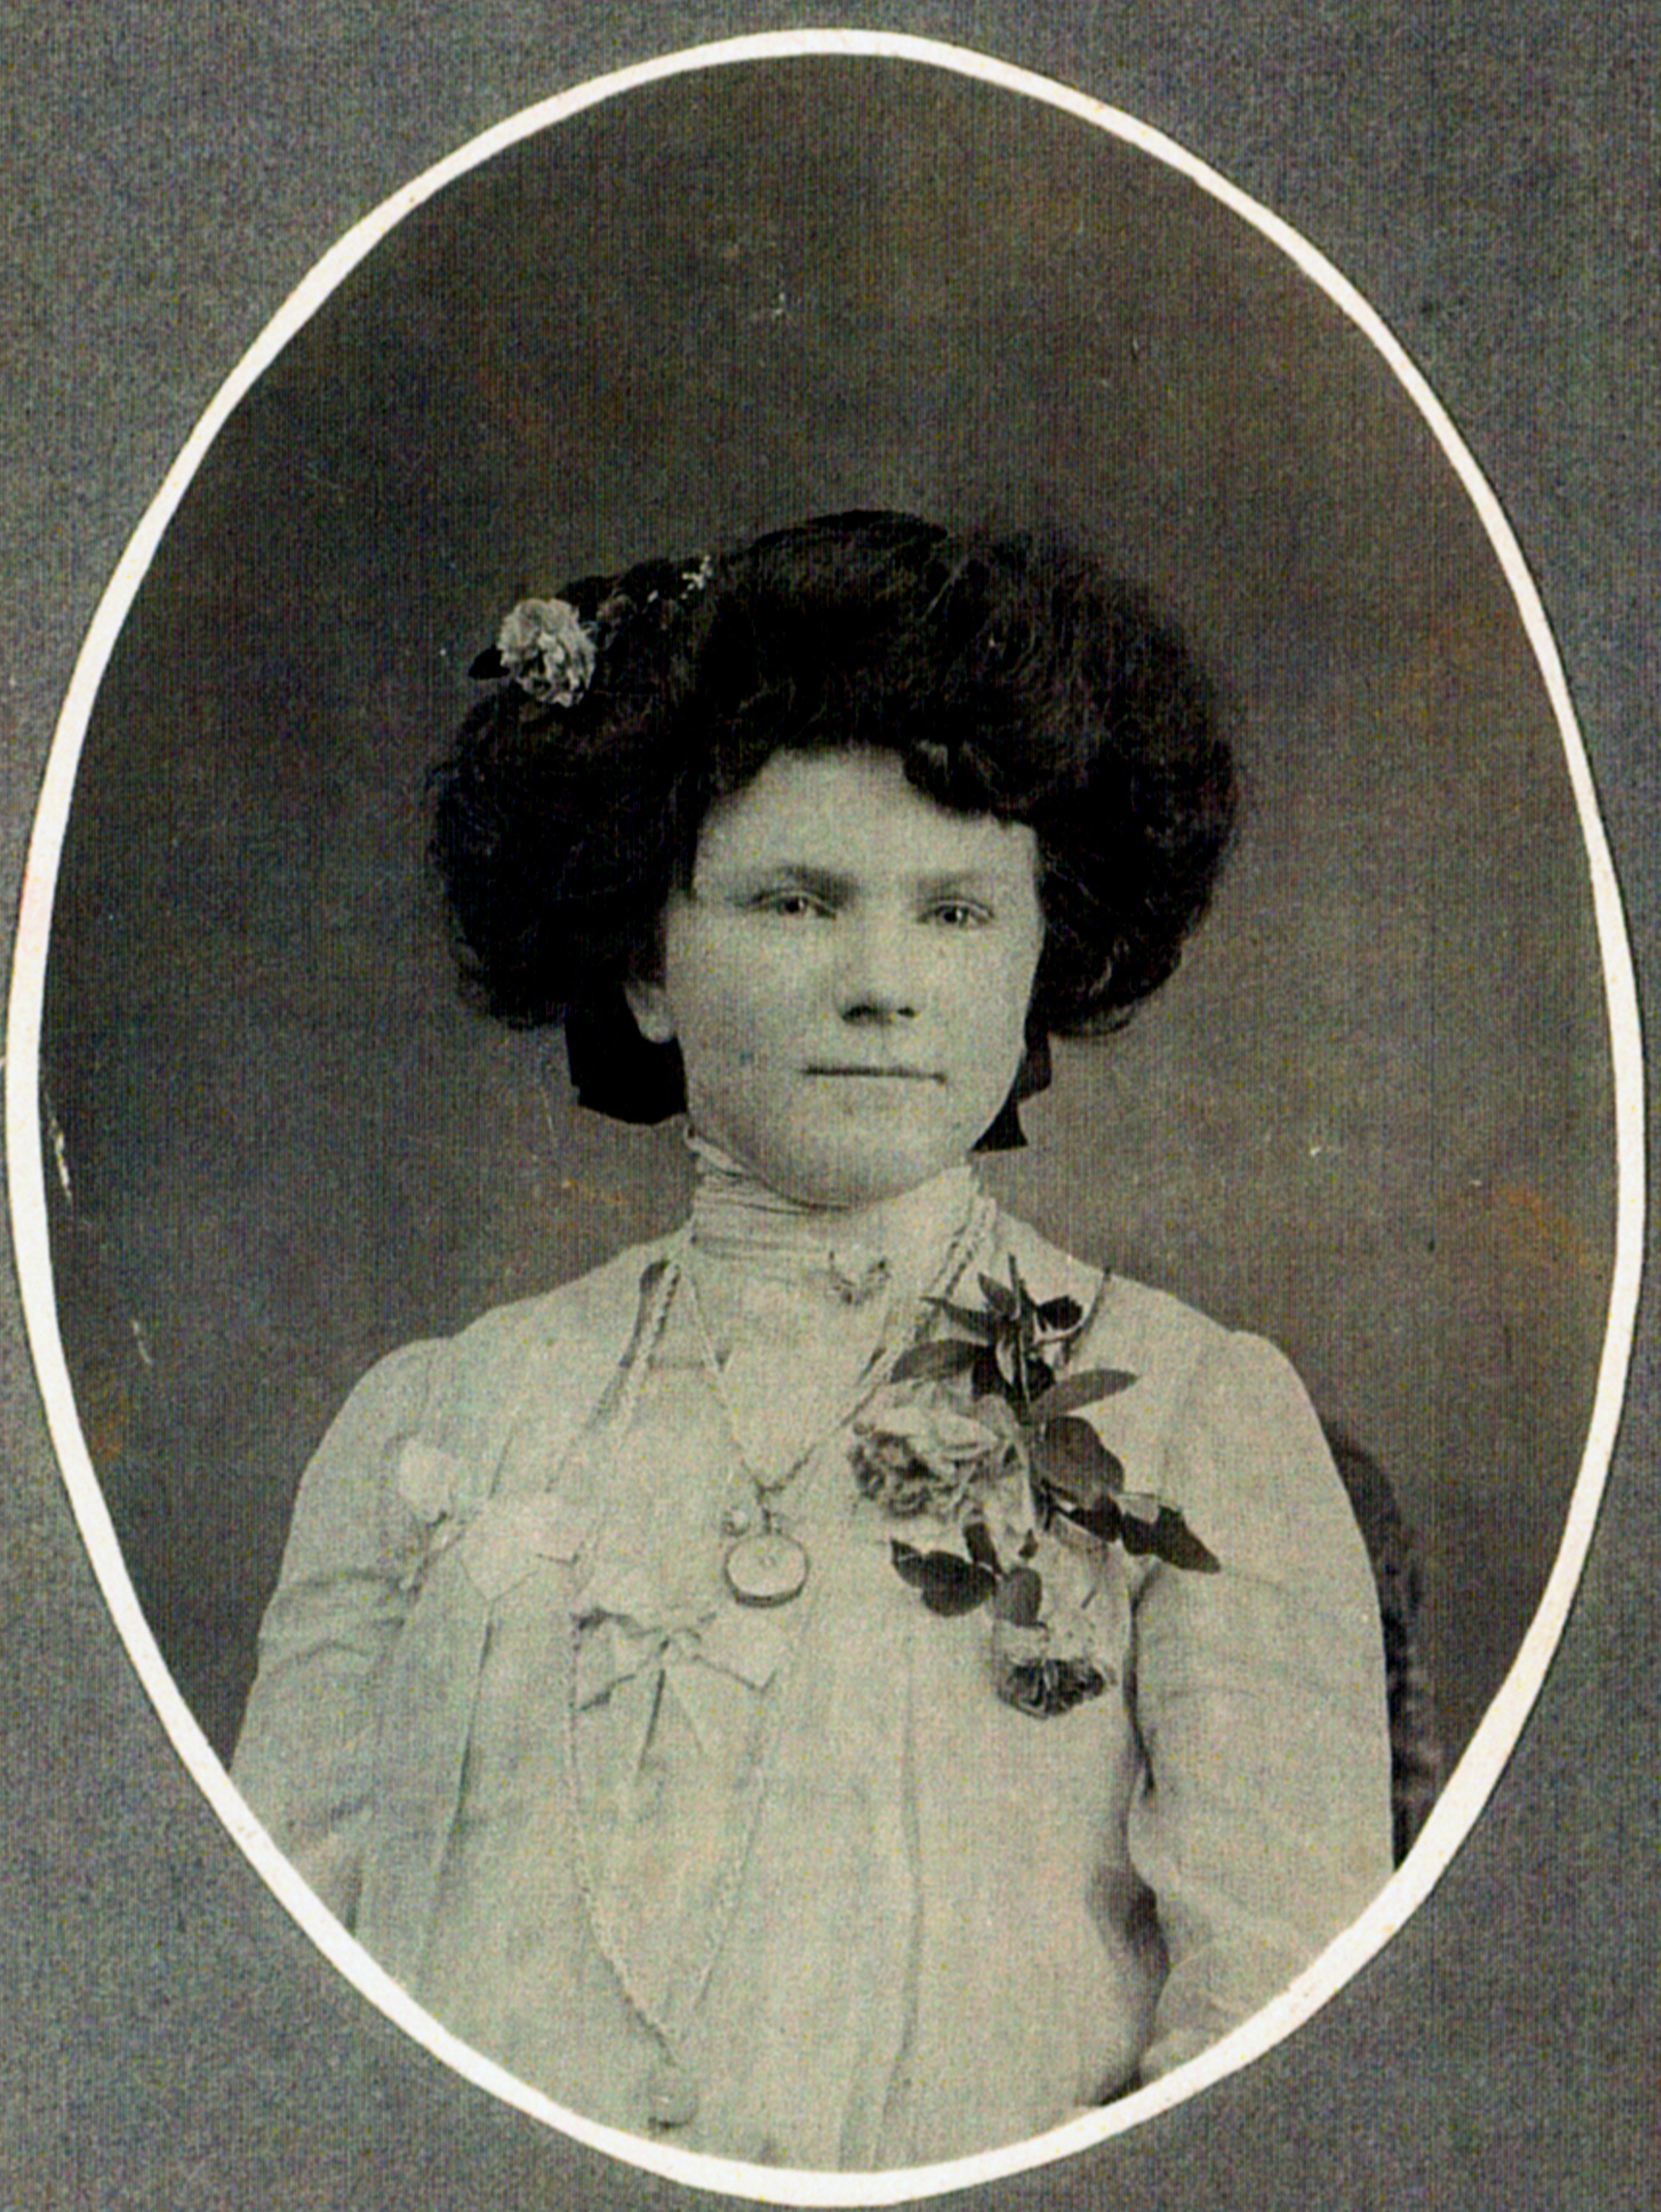 Unidentified Woman - No Location Given.jpg